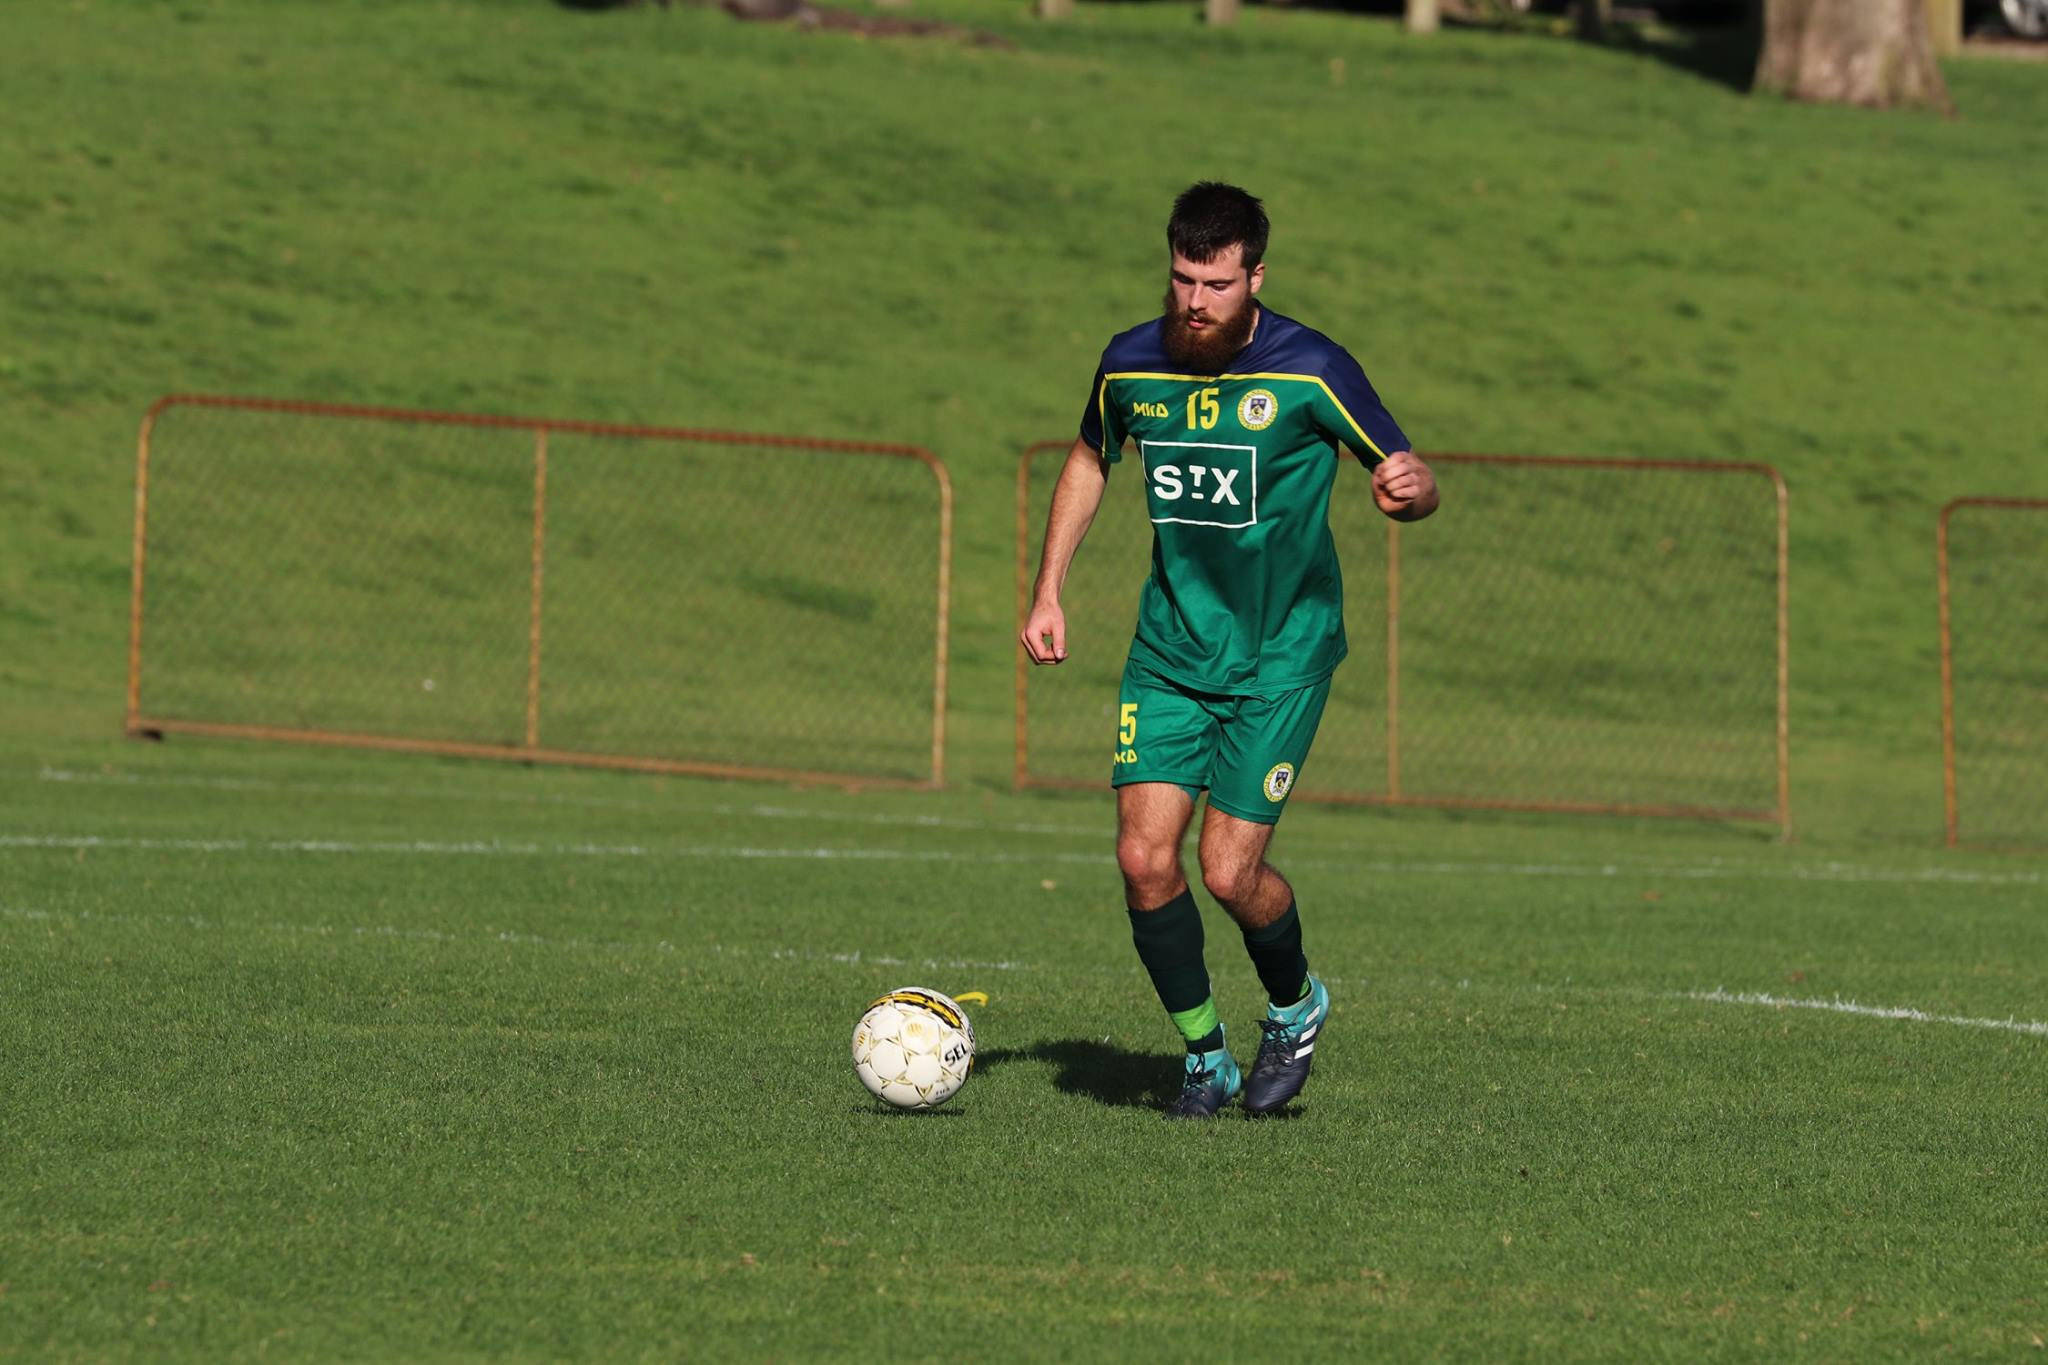 TOM MORONEY ON THE BALL AGAINST MORLEY - CREDIT: GABRIELE MALUGA